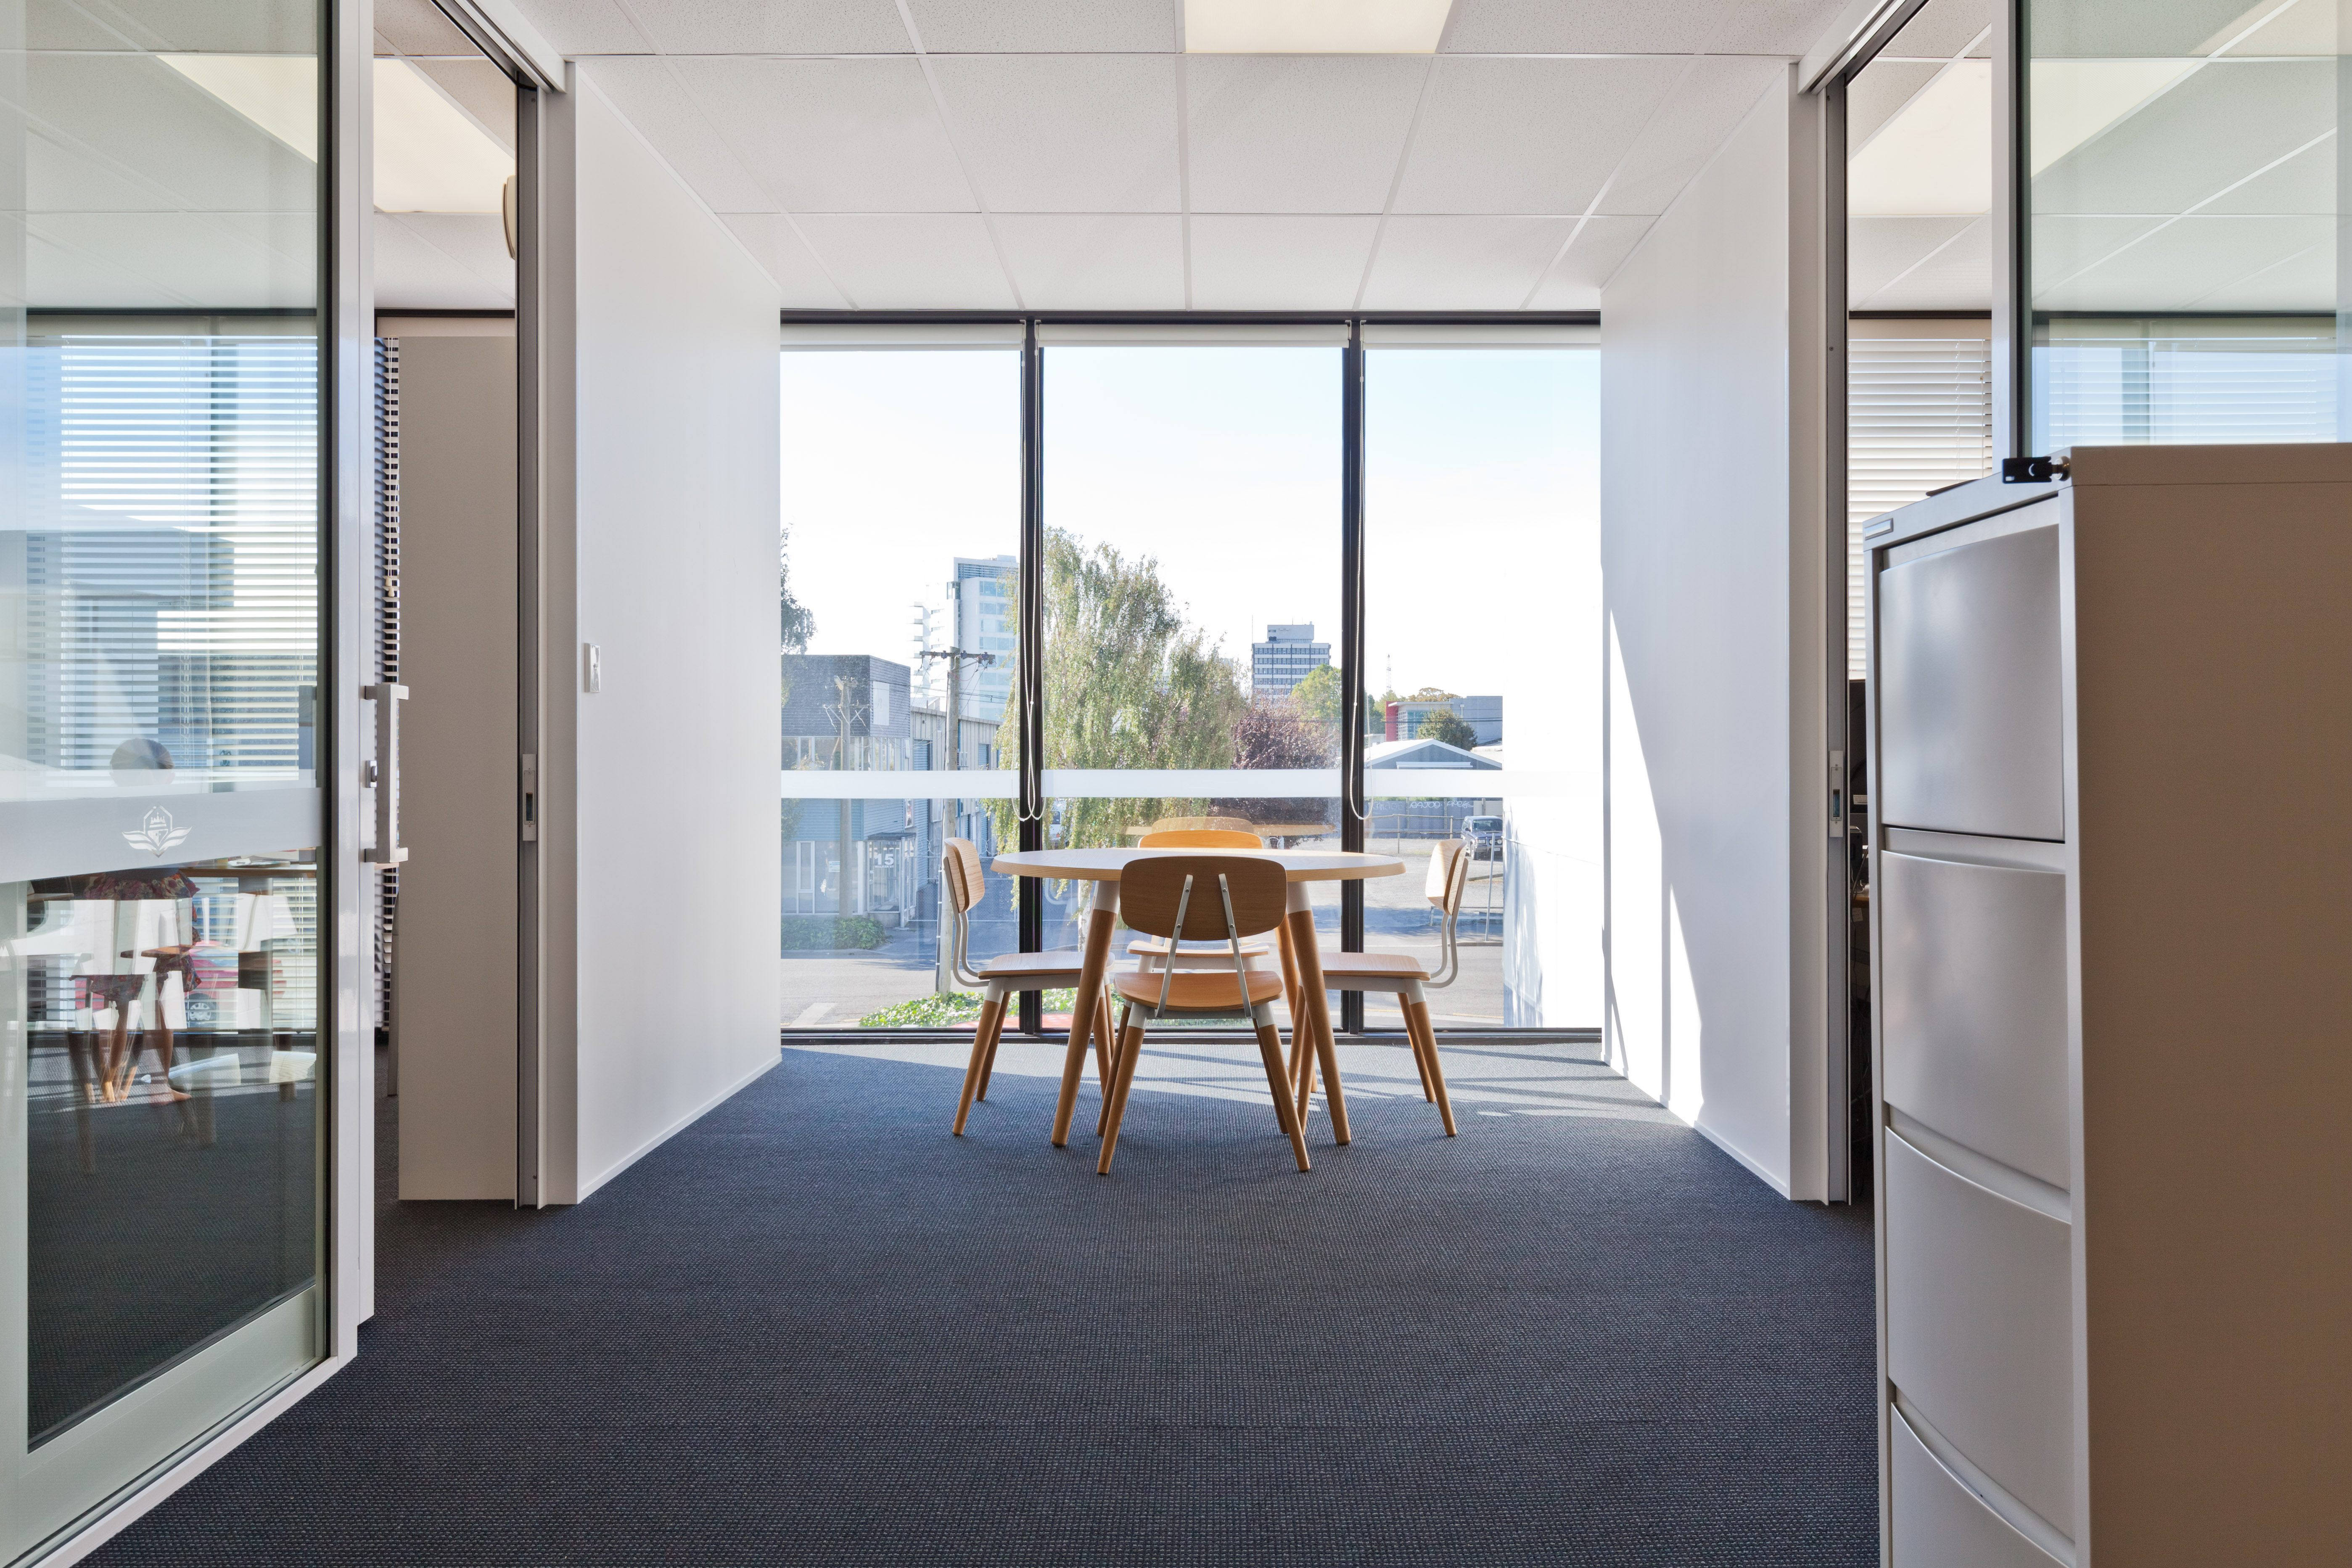 Commercial office fitout meeting room